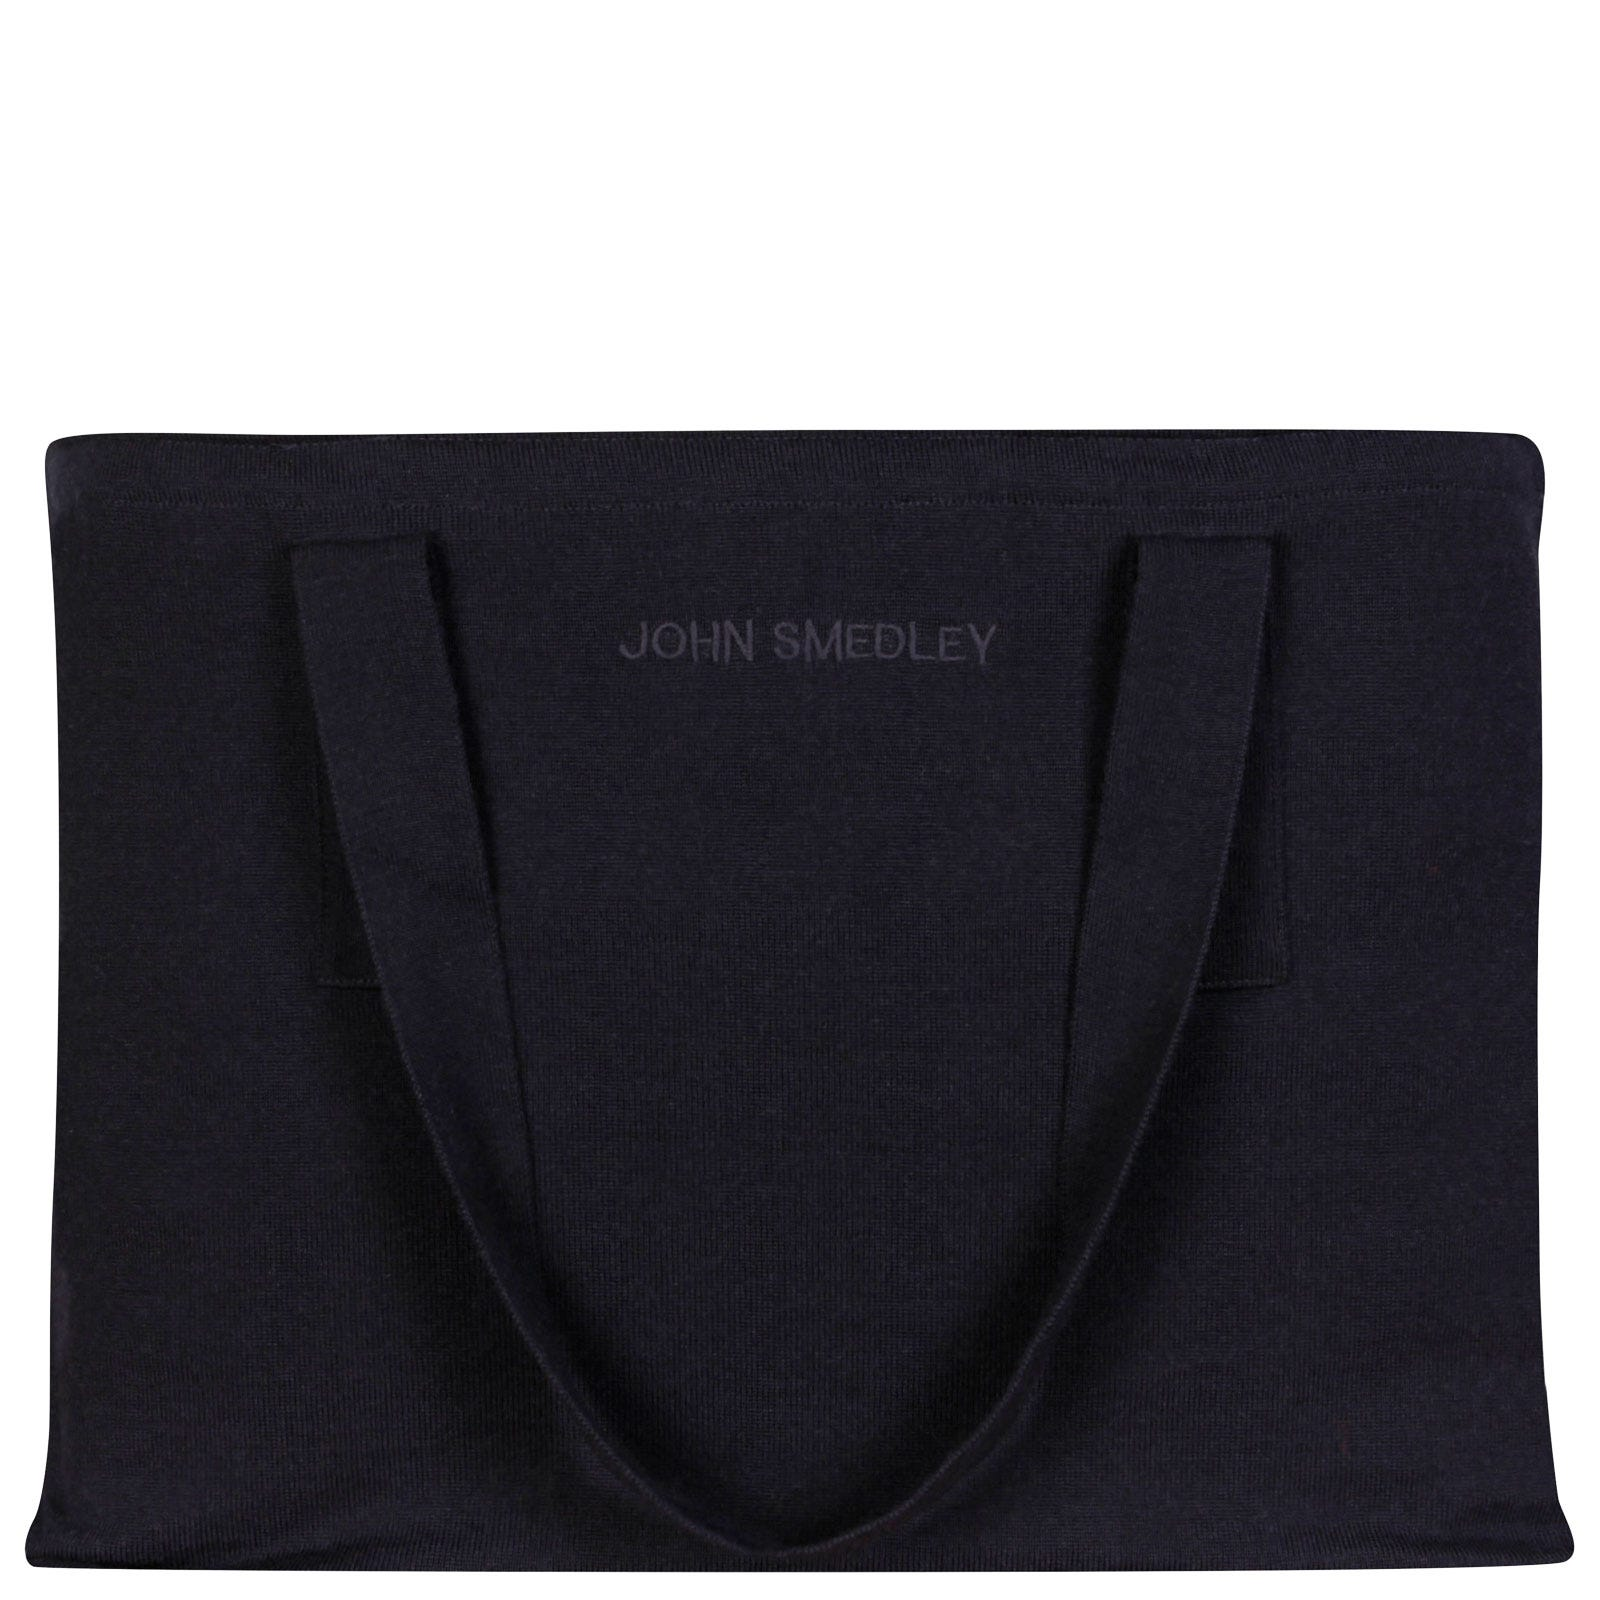 John Smedley tote Merino Wool & Cotton Tote in Midnight-ONE